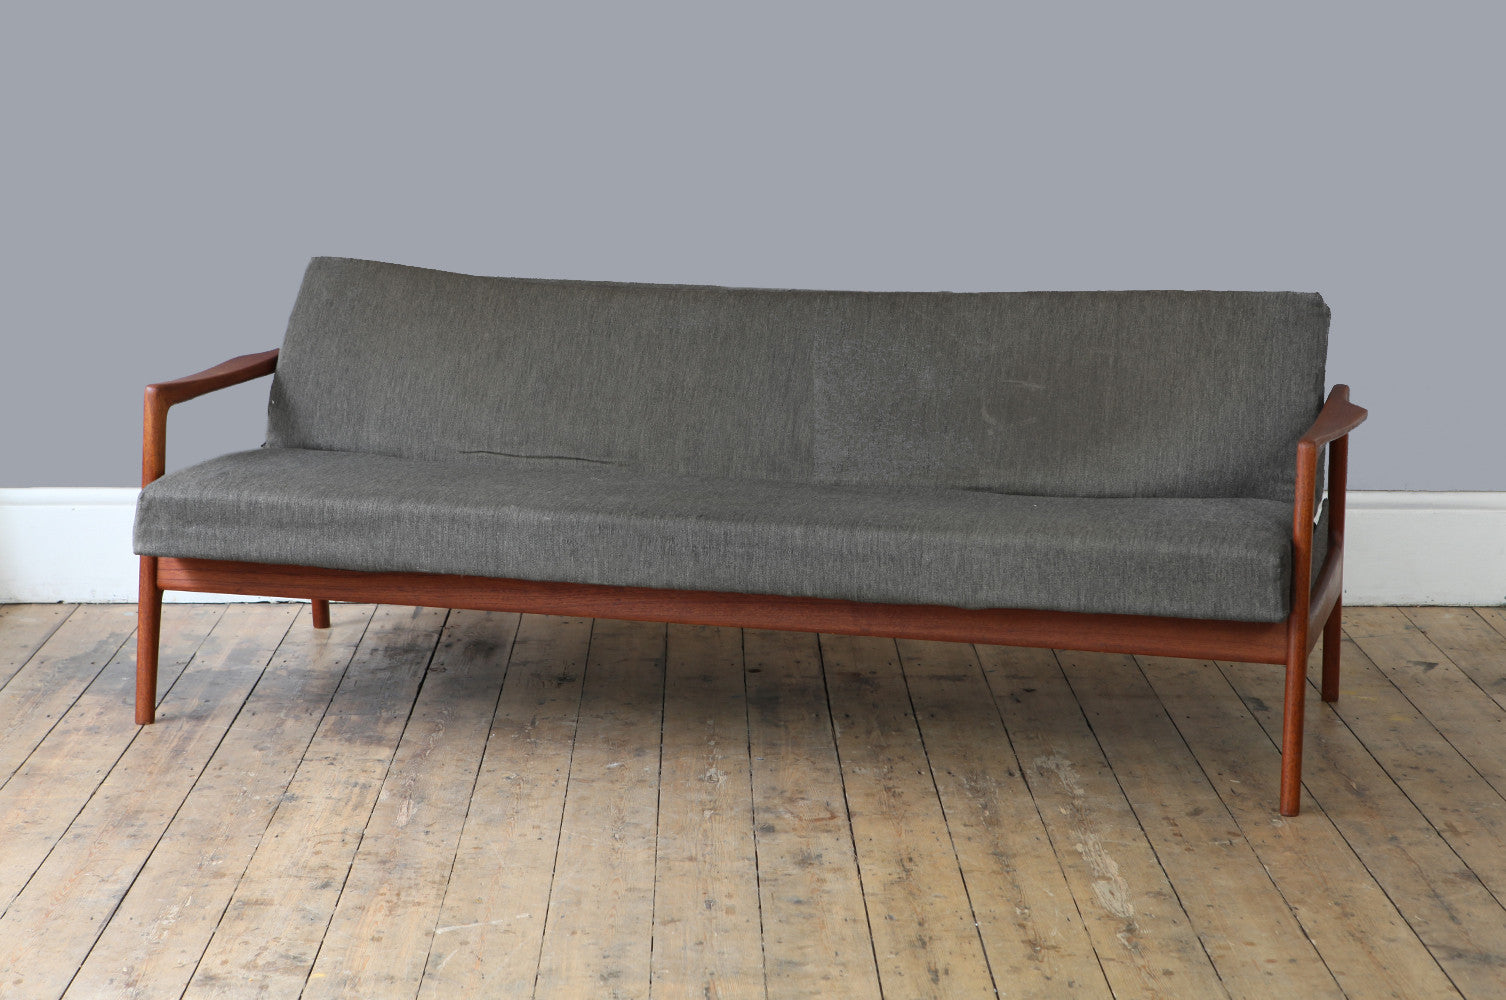 1960s Danish Sofa Bed   Forest London